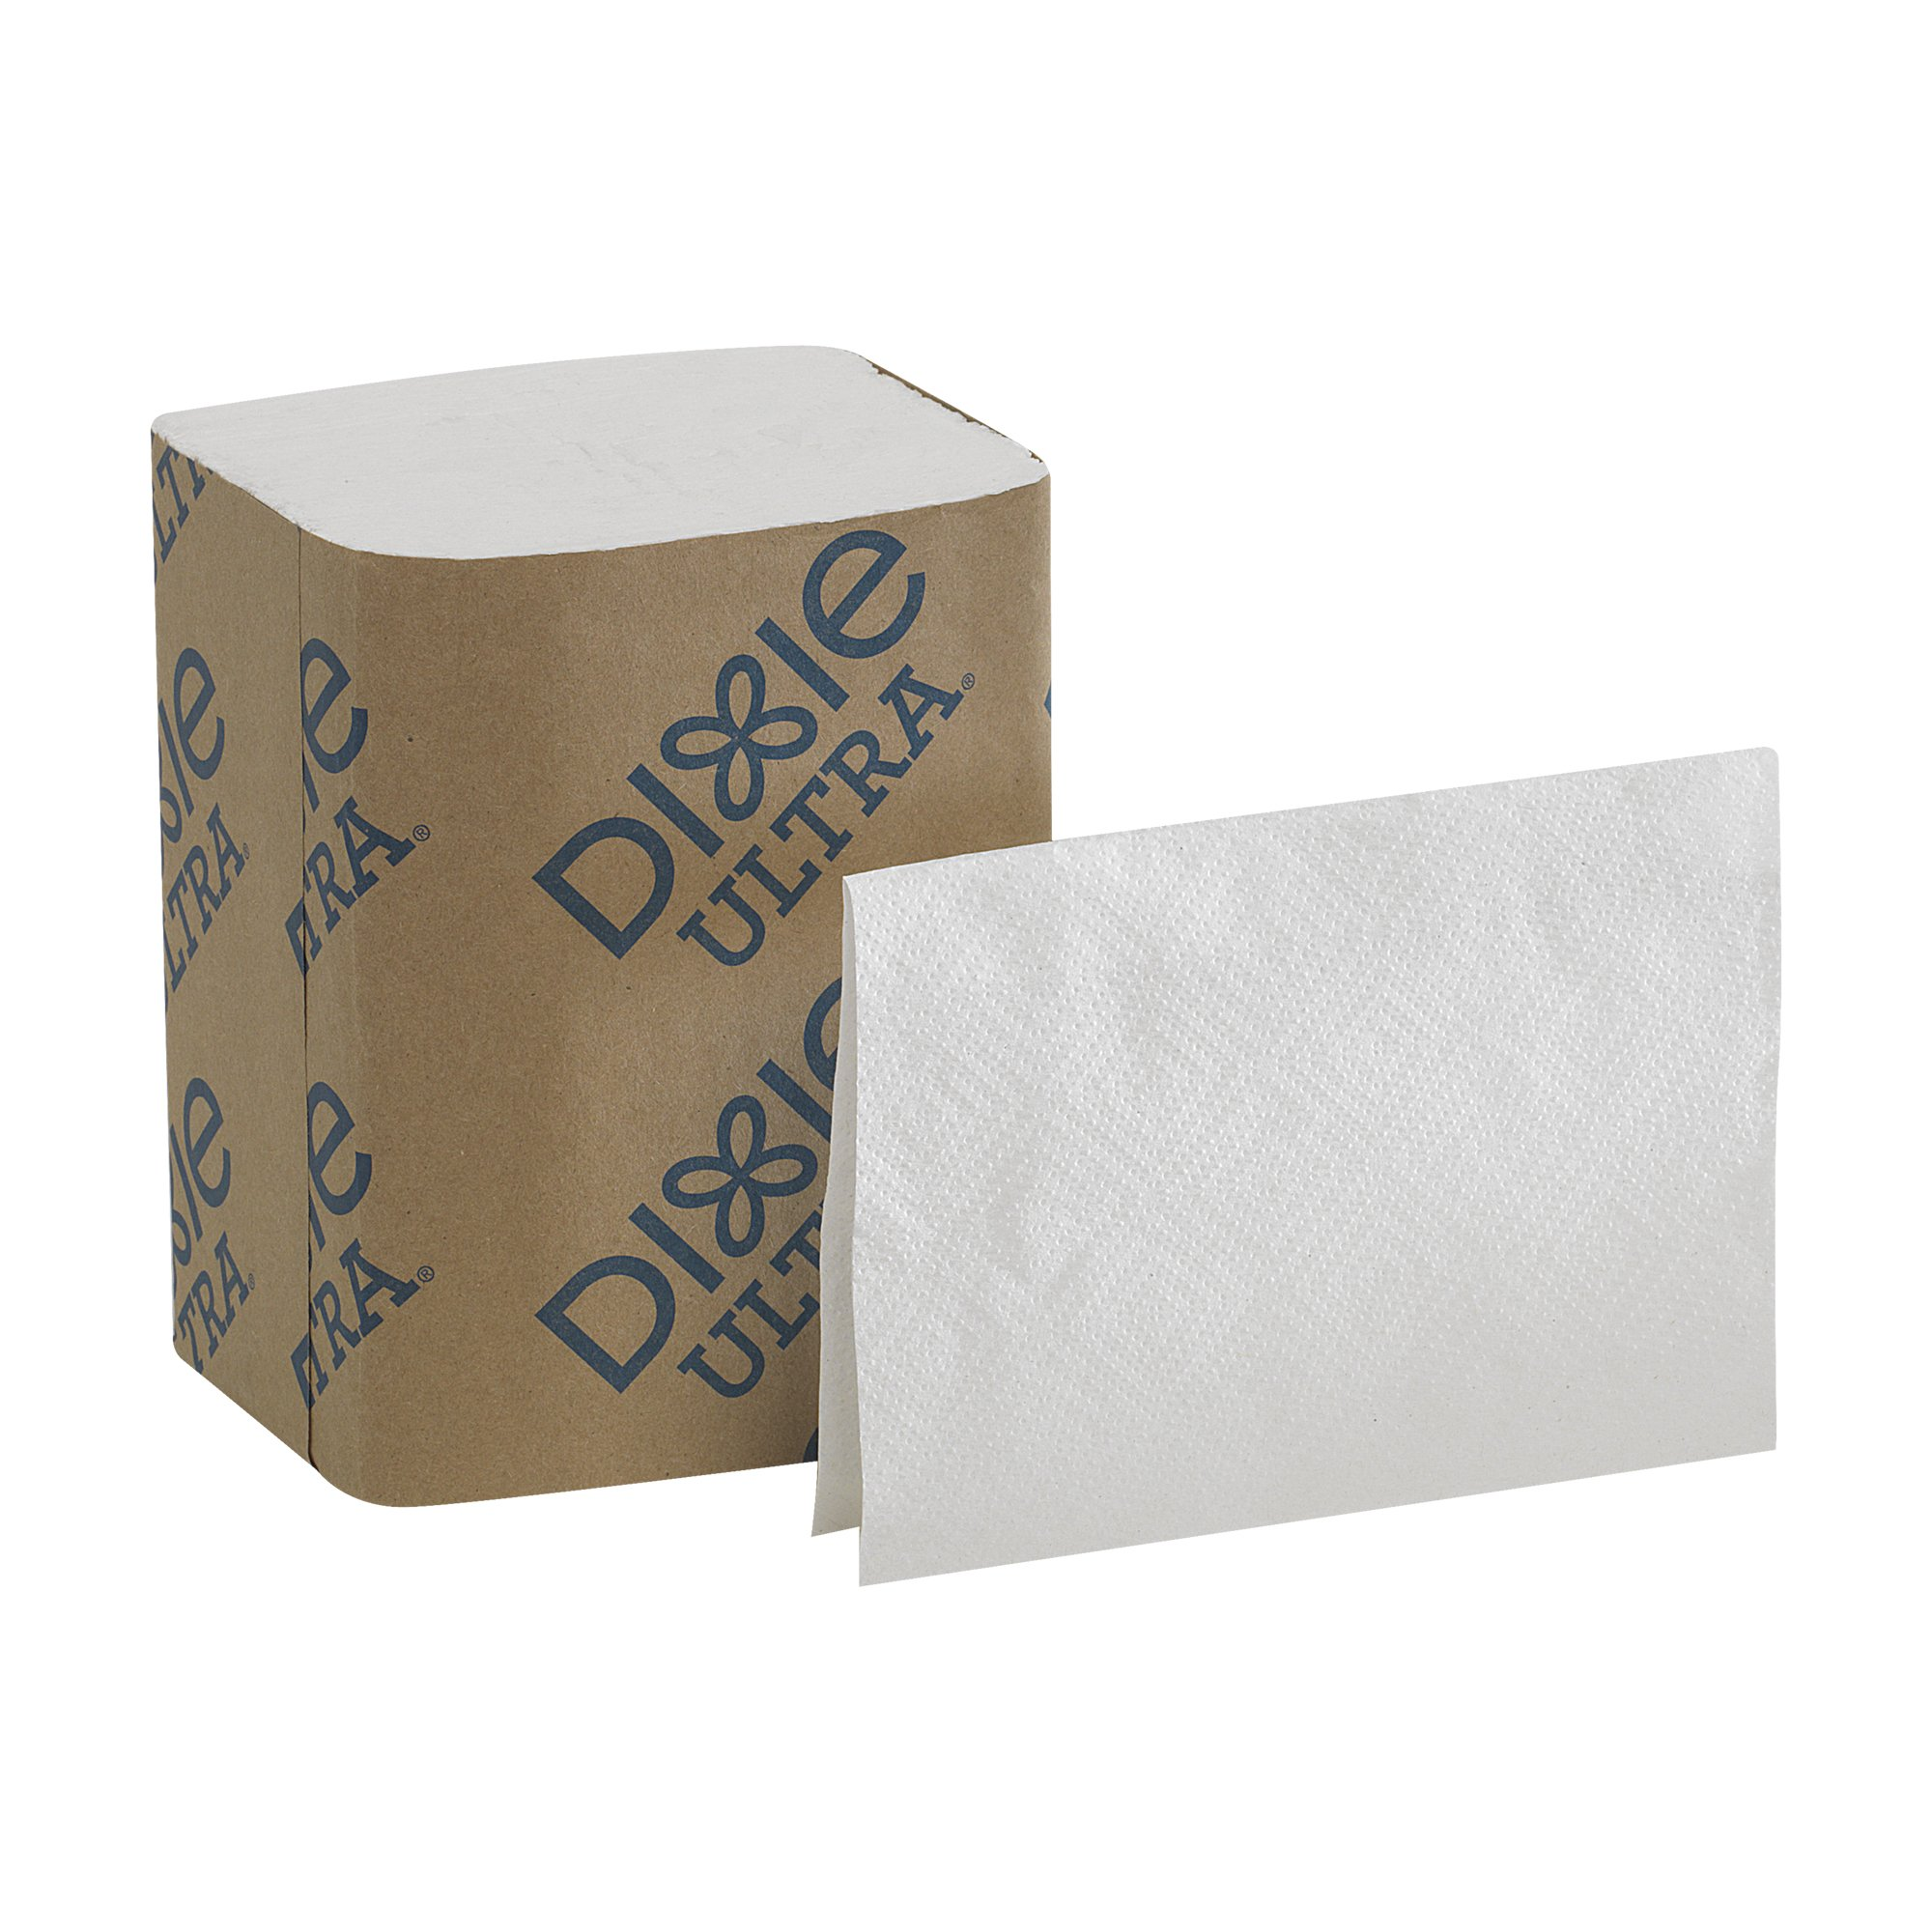 Dixie Ultra Interfold 2-Ply Napkin Dispenser Refill (Formerly EasyNap) by GP PRO, 32001, White (Case of 4 Packs, 250 Napkins per Pack; 1000 Napkins Total)